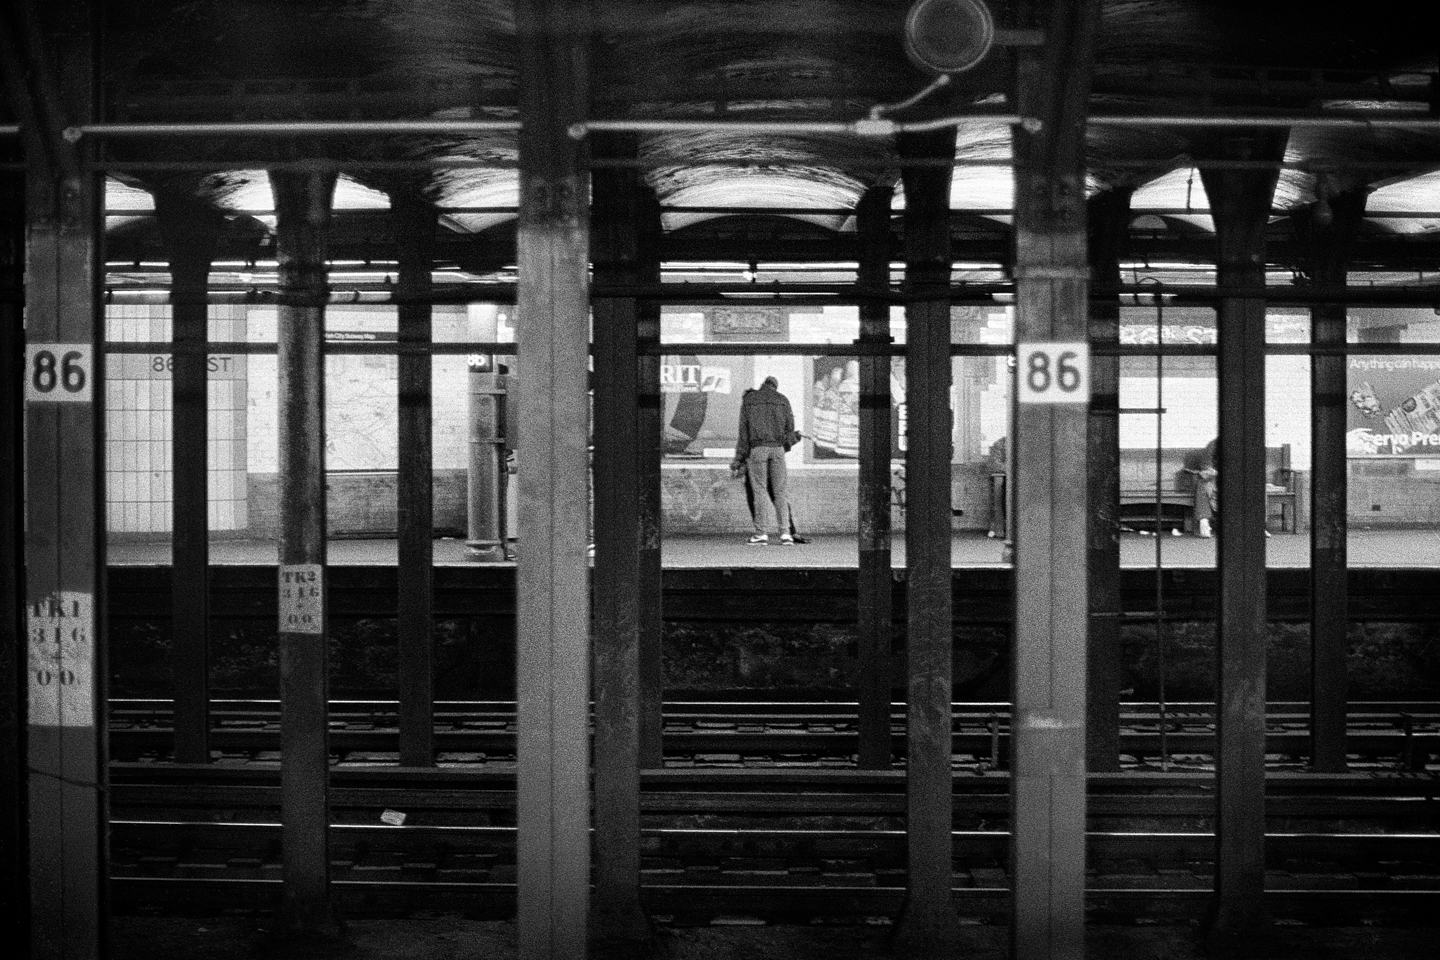 Black and White, Photograph, Subway Scene, New York City, 1985